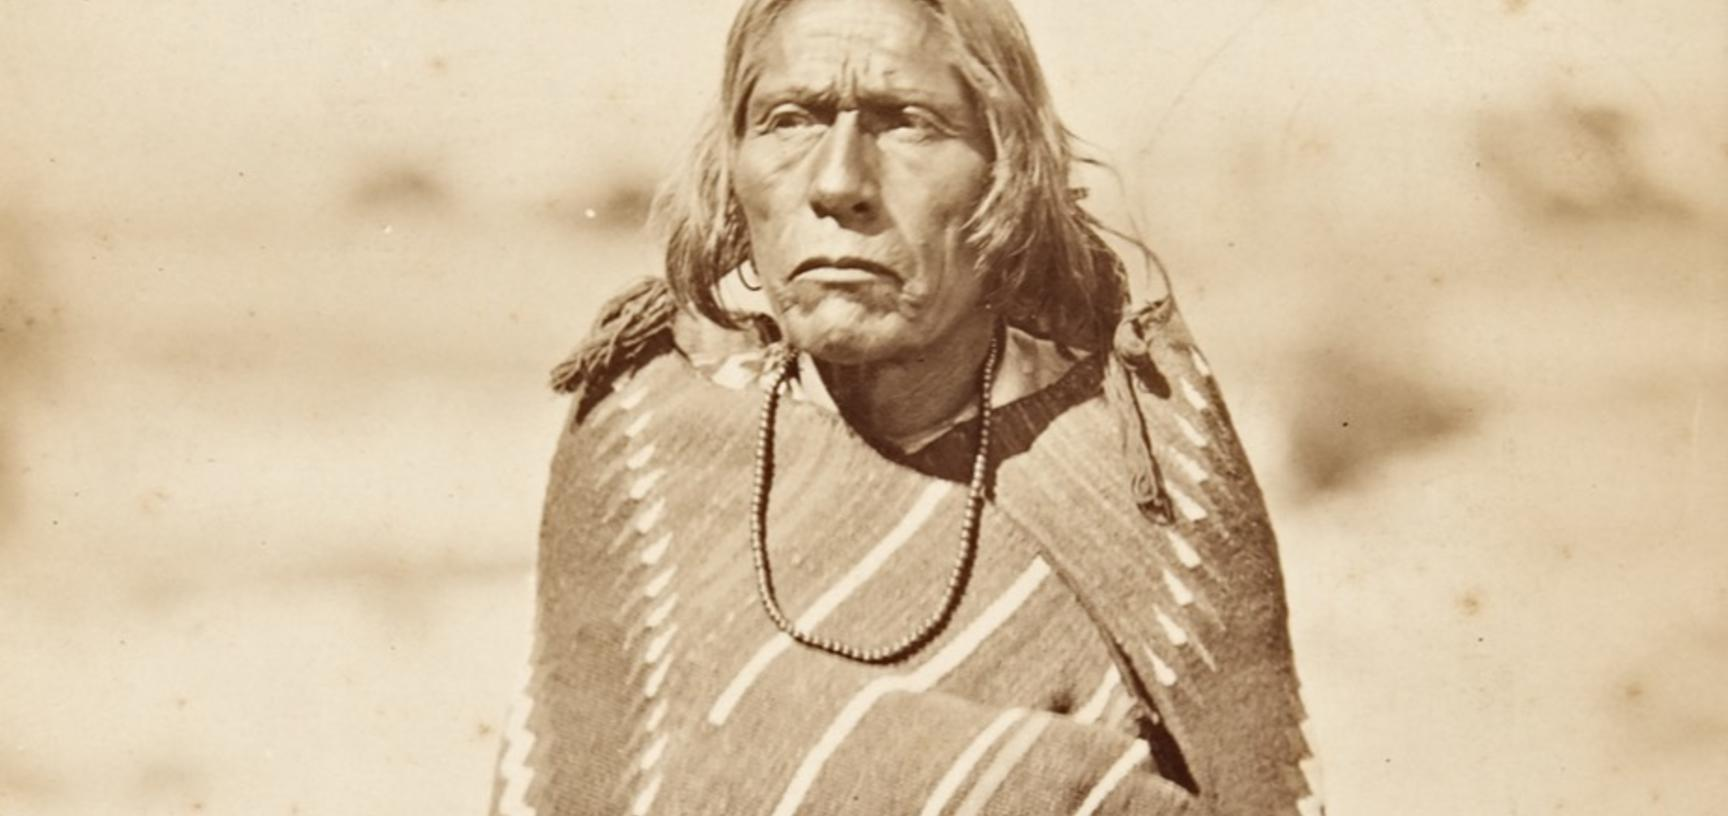 Portrait of the governor of San Juan Pueblo (present-day Ohkay Owingeh), standing, wrapped in a blanket.